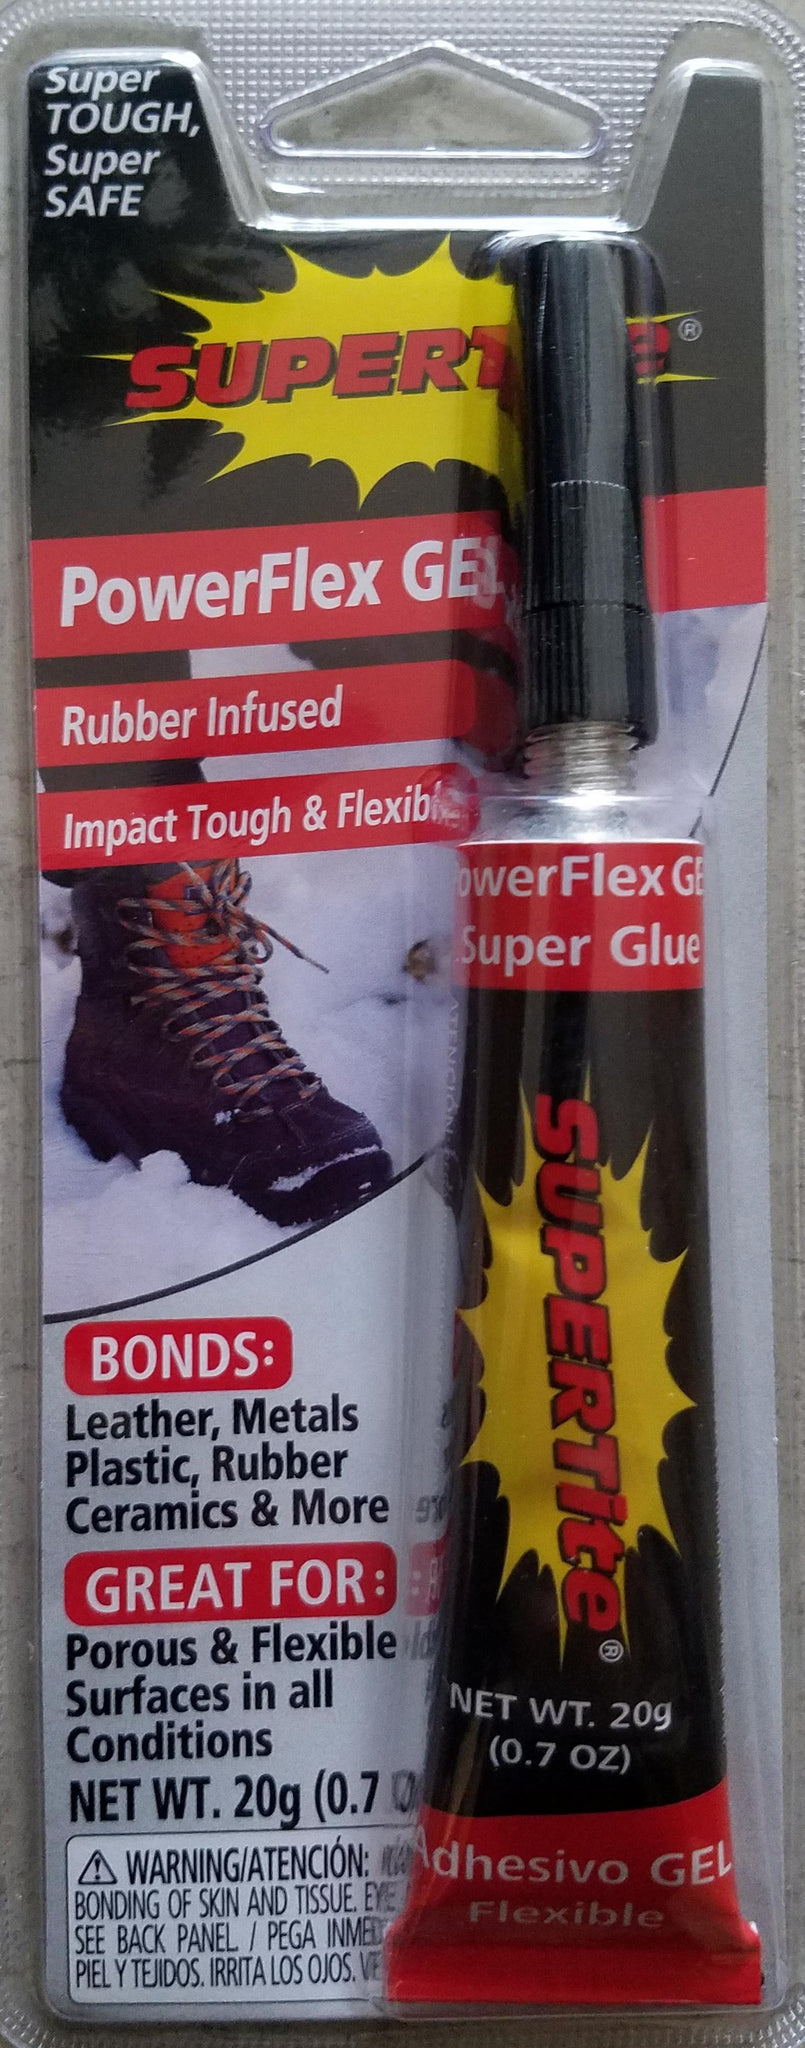 Ref-1165 Supertite PowerFlex Gel 20g/0.71oz